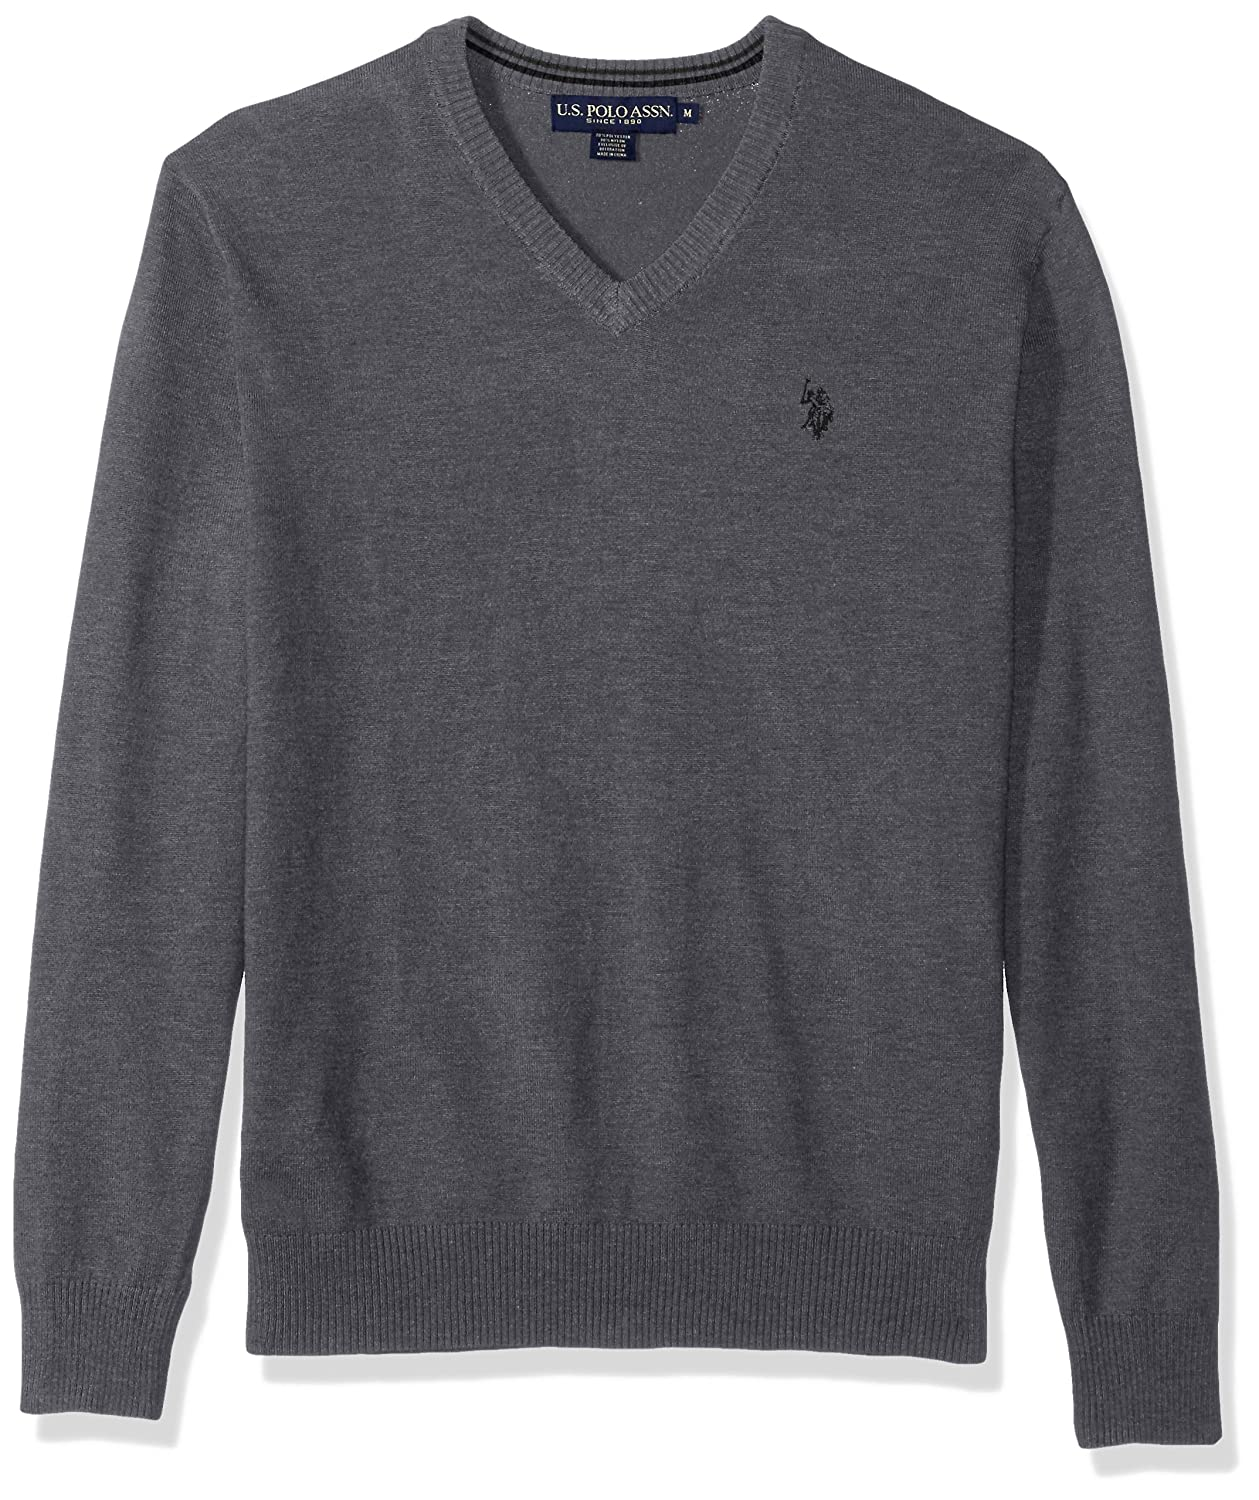 U.S. Polo Assn.. Men's Stretch Fabric Solid V-Neck Sweater ACUF7S5760